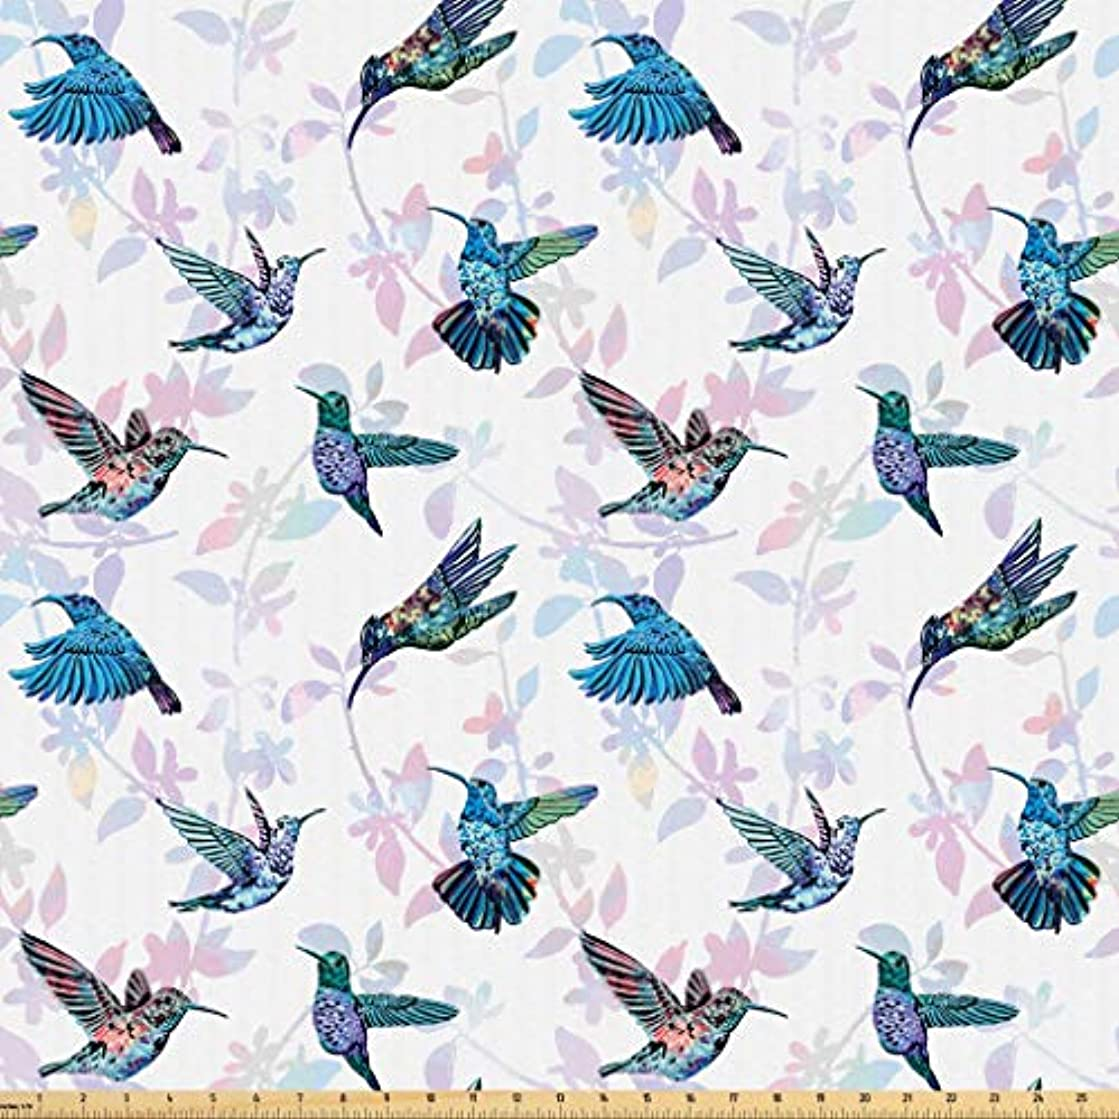 Lunarable Hummingbirds Fabric by The Yard, Tropical Animal Pattern Wildlife Inspirations Exotic Flying Creatures Print, Microfiber Fabric for Arts and Crafts Textiles & Decor, 3 Yards, Multicolor